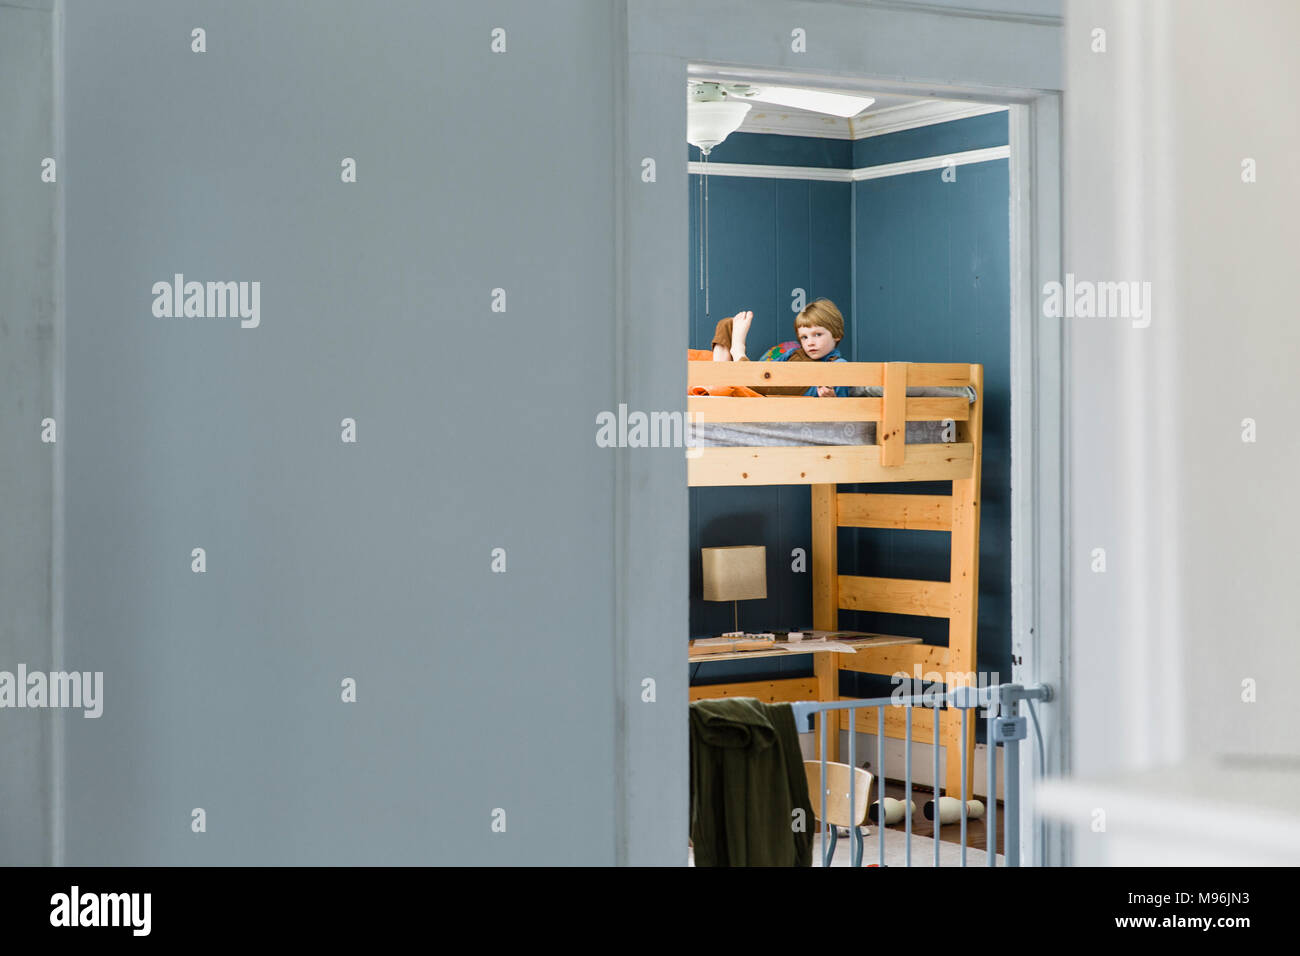 Boy on top of bunk bed reading - Stock Image